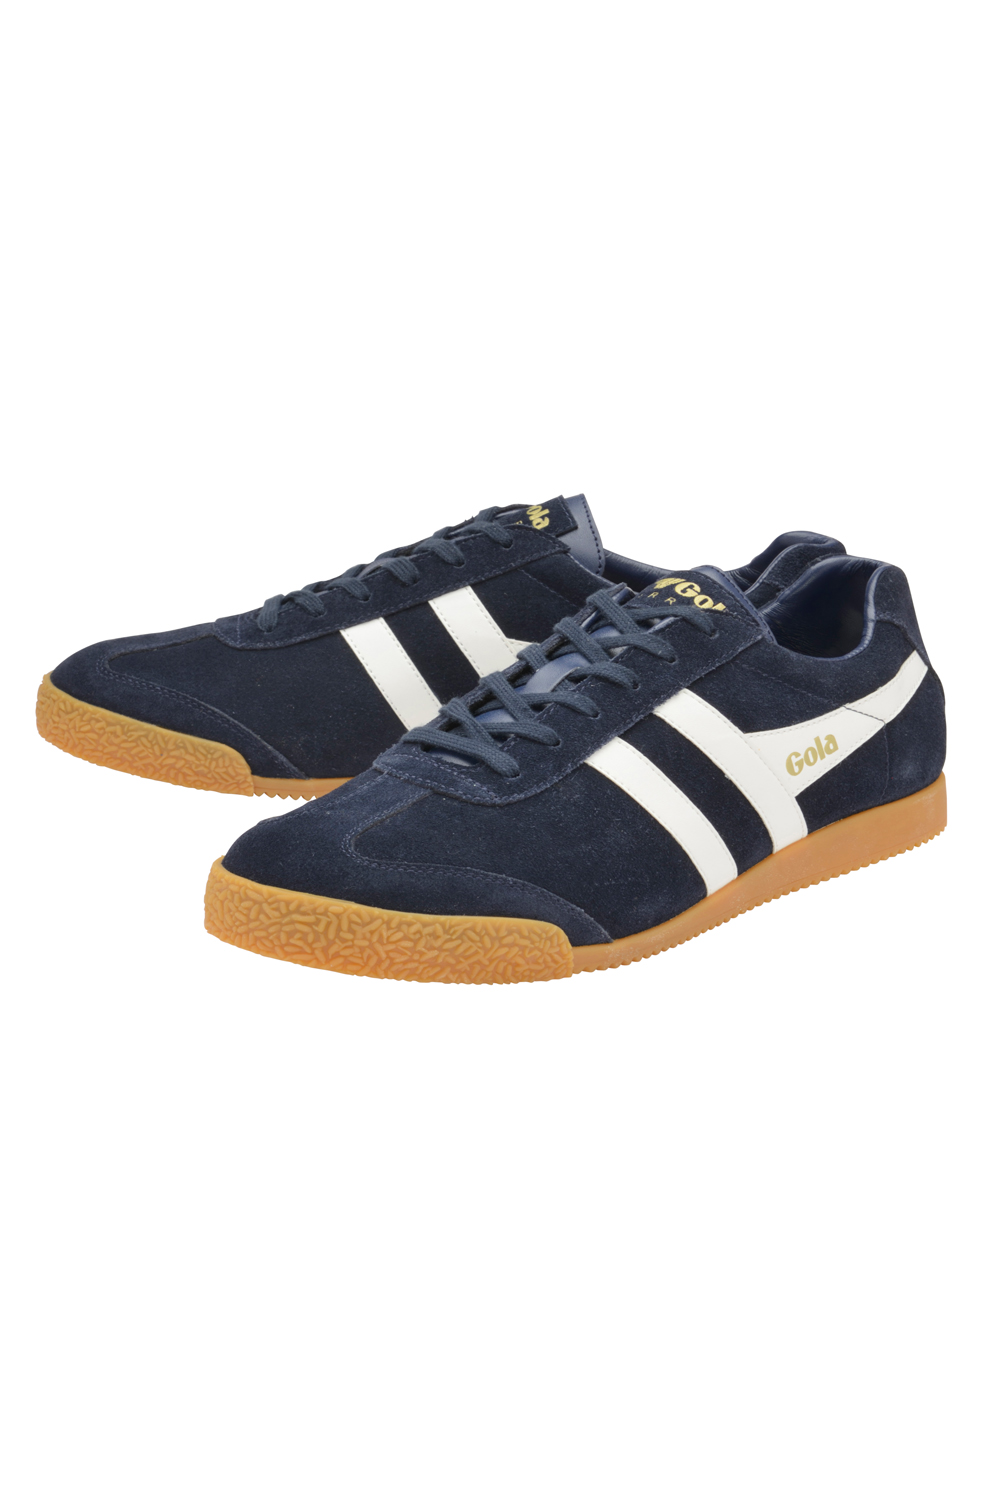 Gola-Harrier-Suede-Classic-Vintage-Lace-Up-Sneakers-Mens-Trainers-Low-Top-Shoes thumbnail 4